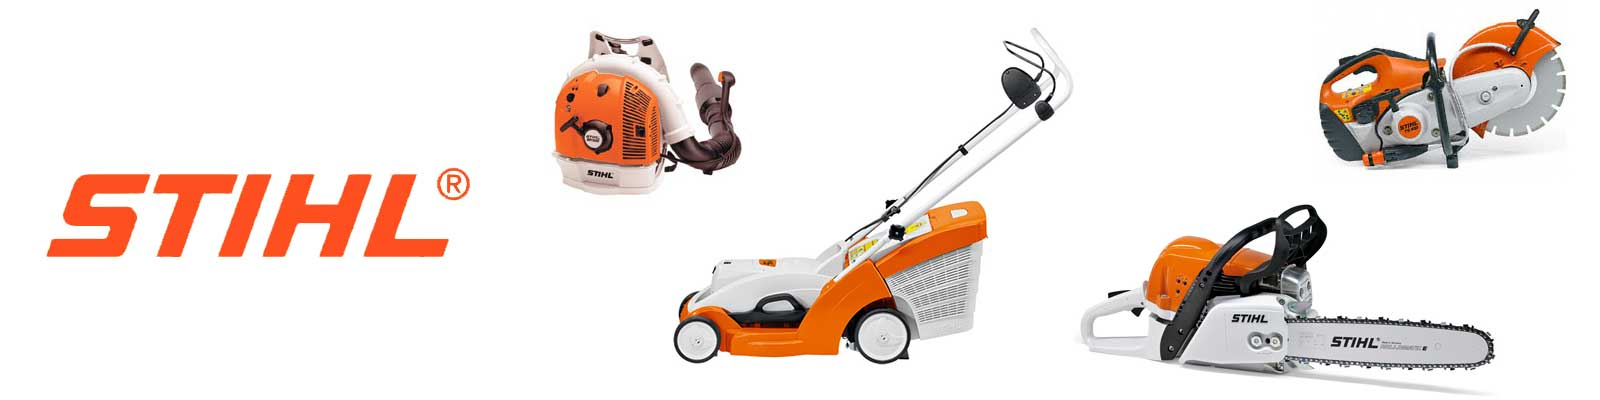 Stihl Equipment sales in the Twin Cities Metro area